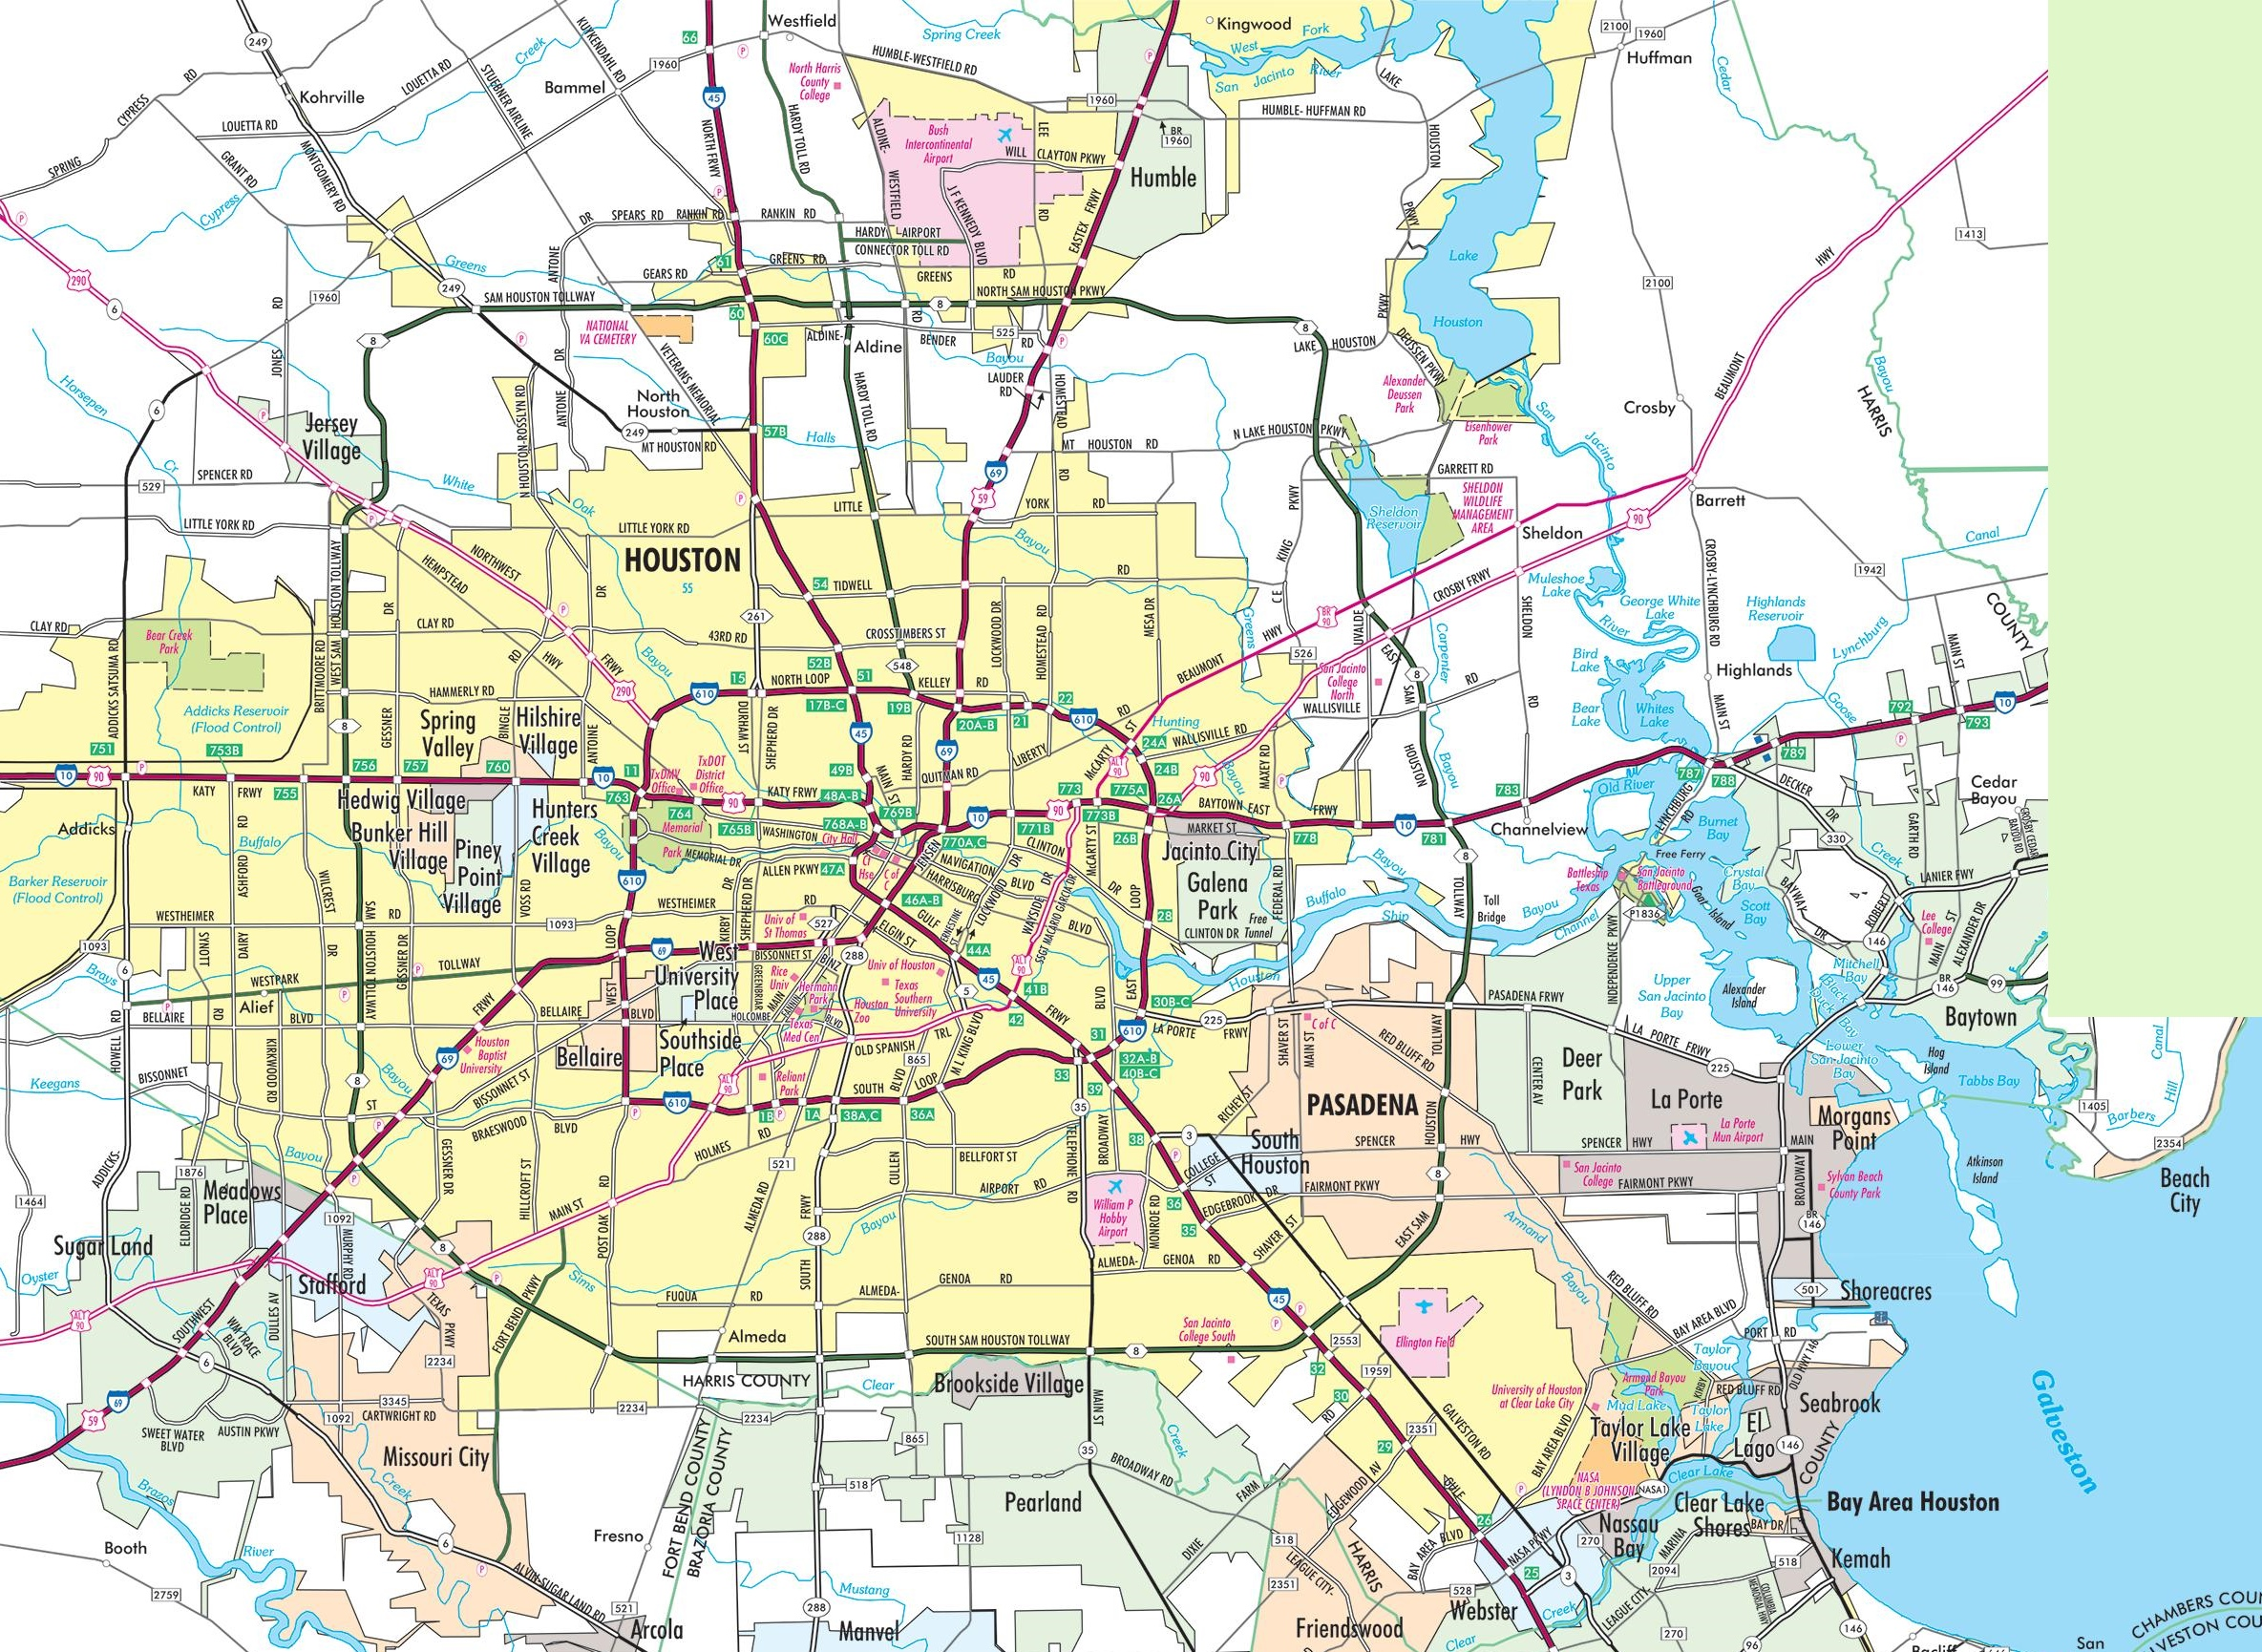 houston-area-road-map Mapa Google Maps West Usa on google maps, mapa dos usa, el mapa de usa,